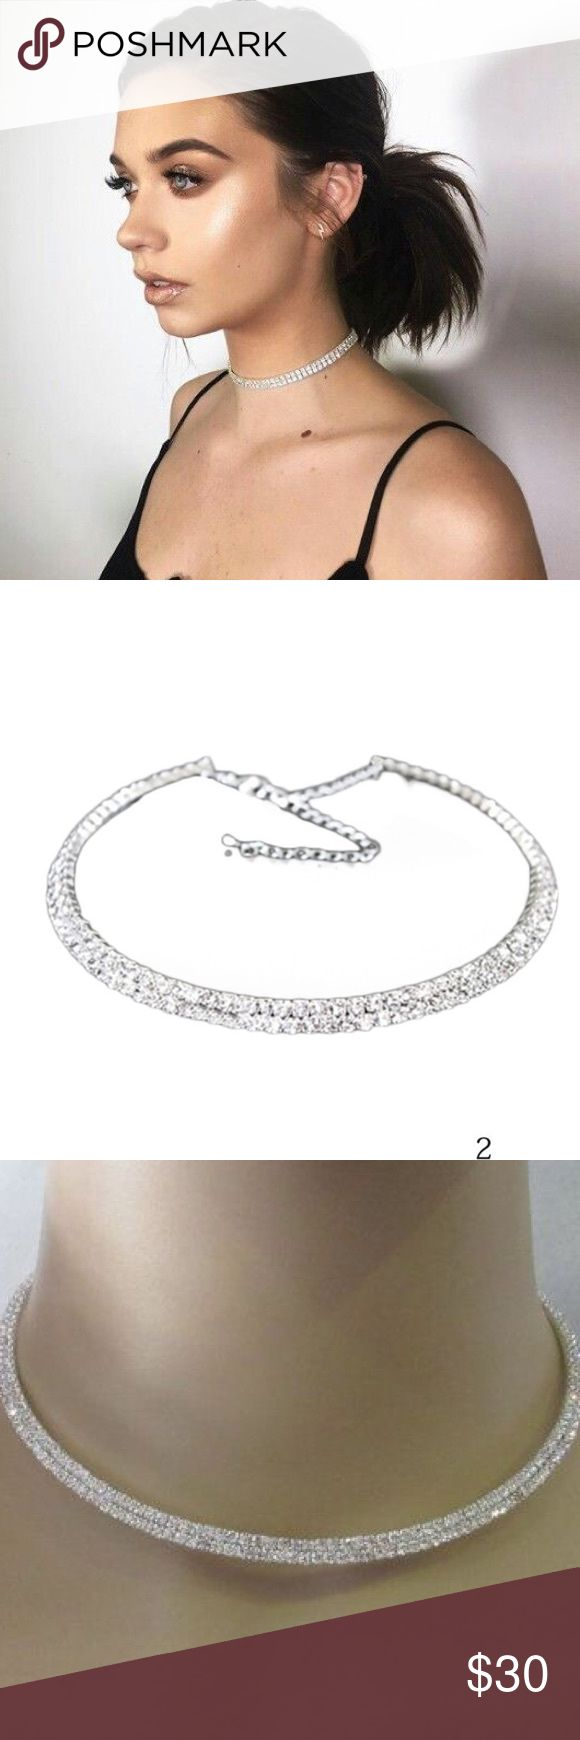 "Diamond Rhinestone Choker Necklace COMING SOON!!!! COMMENT BELOW TO SECURE YOURS TODAY  Two-layer Diamond Rhinestones • Silver coated hardware • Size (Diameter):4.7"" (approx 12cm) • Adjustable hook Clasp • Affordable Luxury • (As seen on Bella + Gigi Hadid, Kim Kardashian, Kylie + Kendall Jenner, and many more celebrities ** Not Nasty Gal) Nasty Gal Jewelry Necklaces"